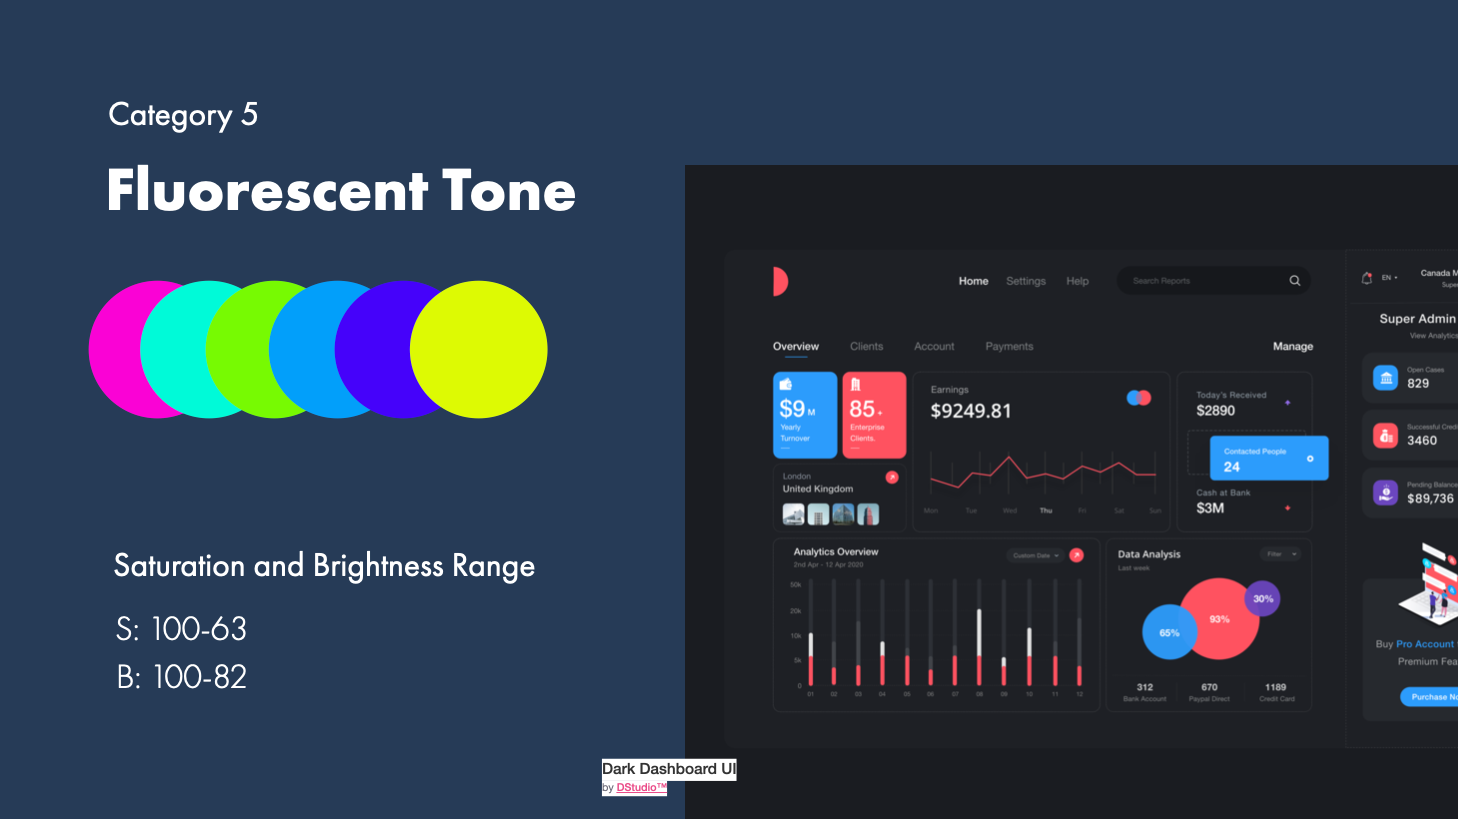 Fluorescent tone examples and range | Dark Dashboard by UI DStudio™